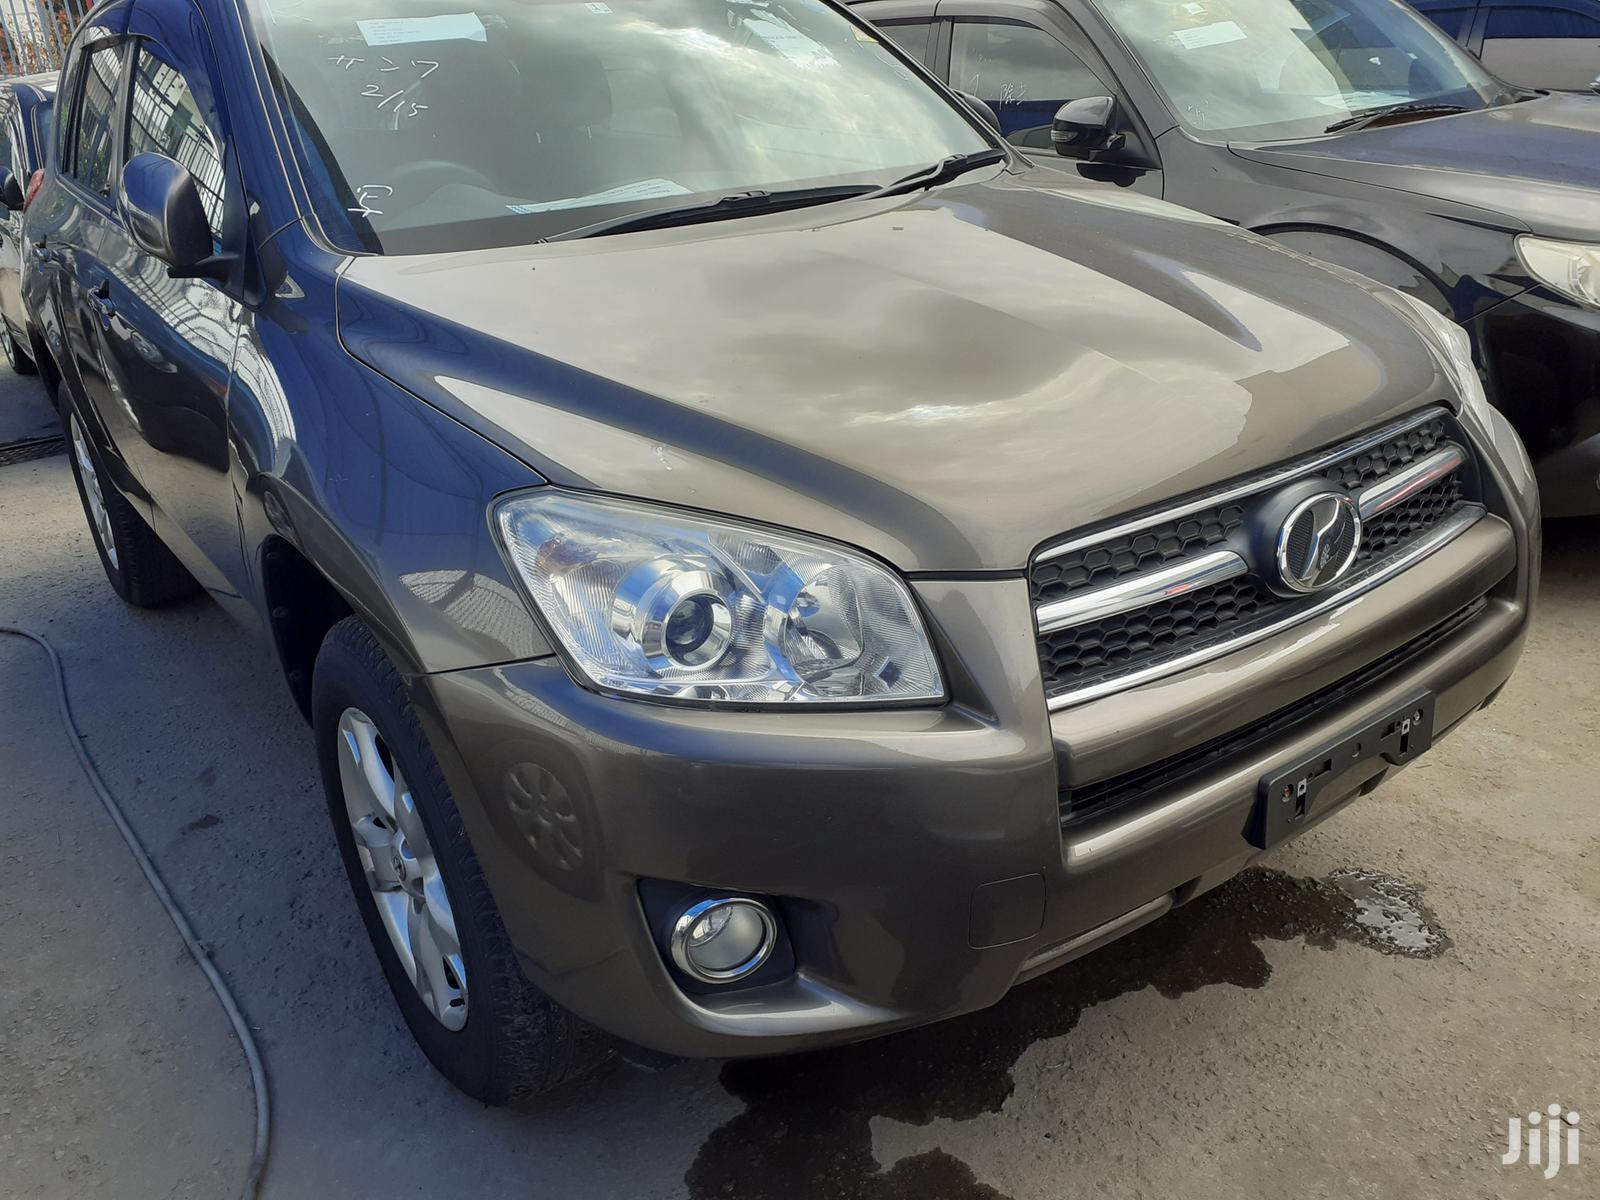 Toyota RAV4 2013 Gray | Cars for sale in Mvita, Majengo, Kenya